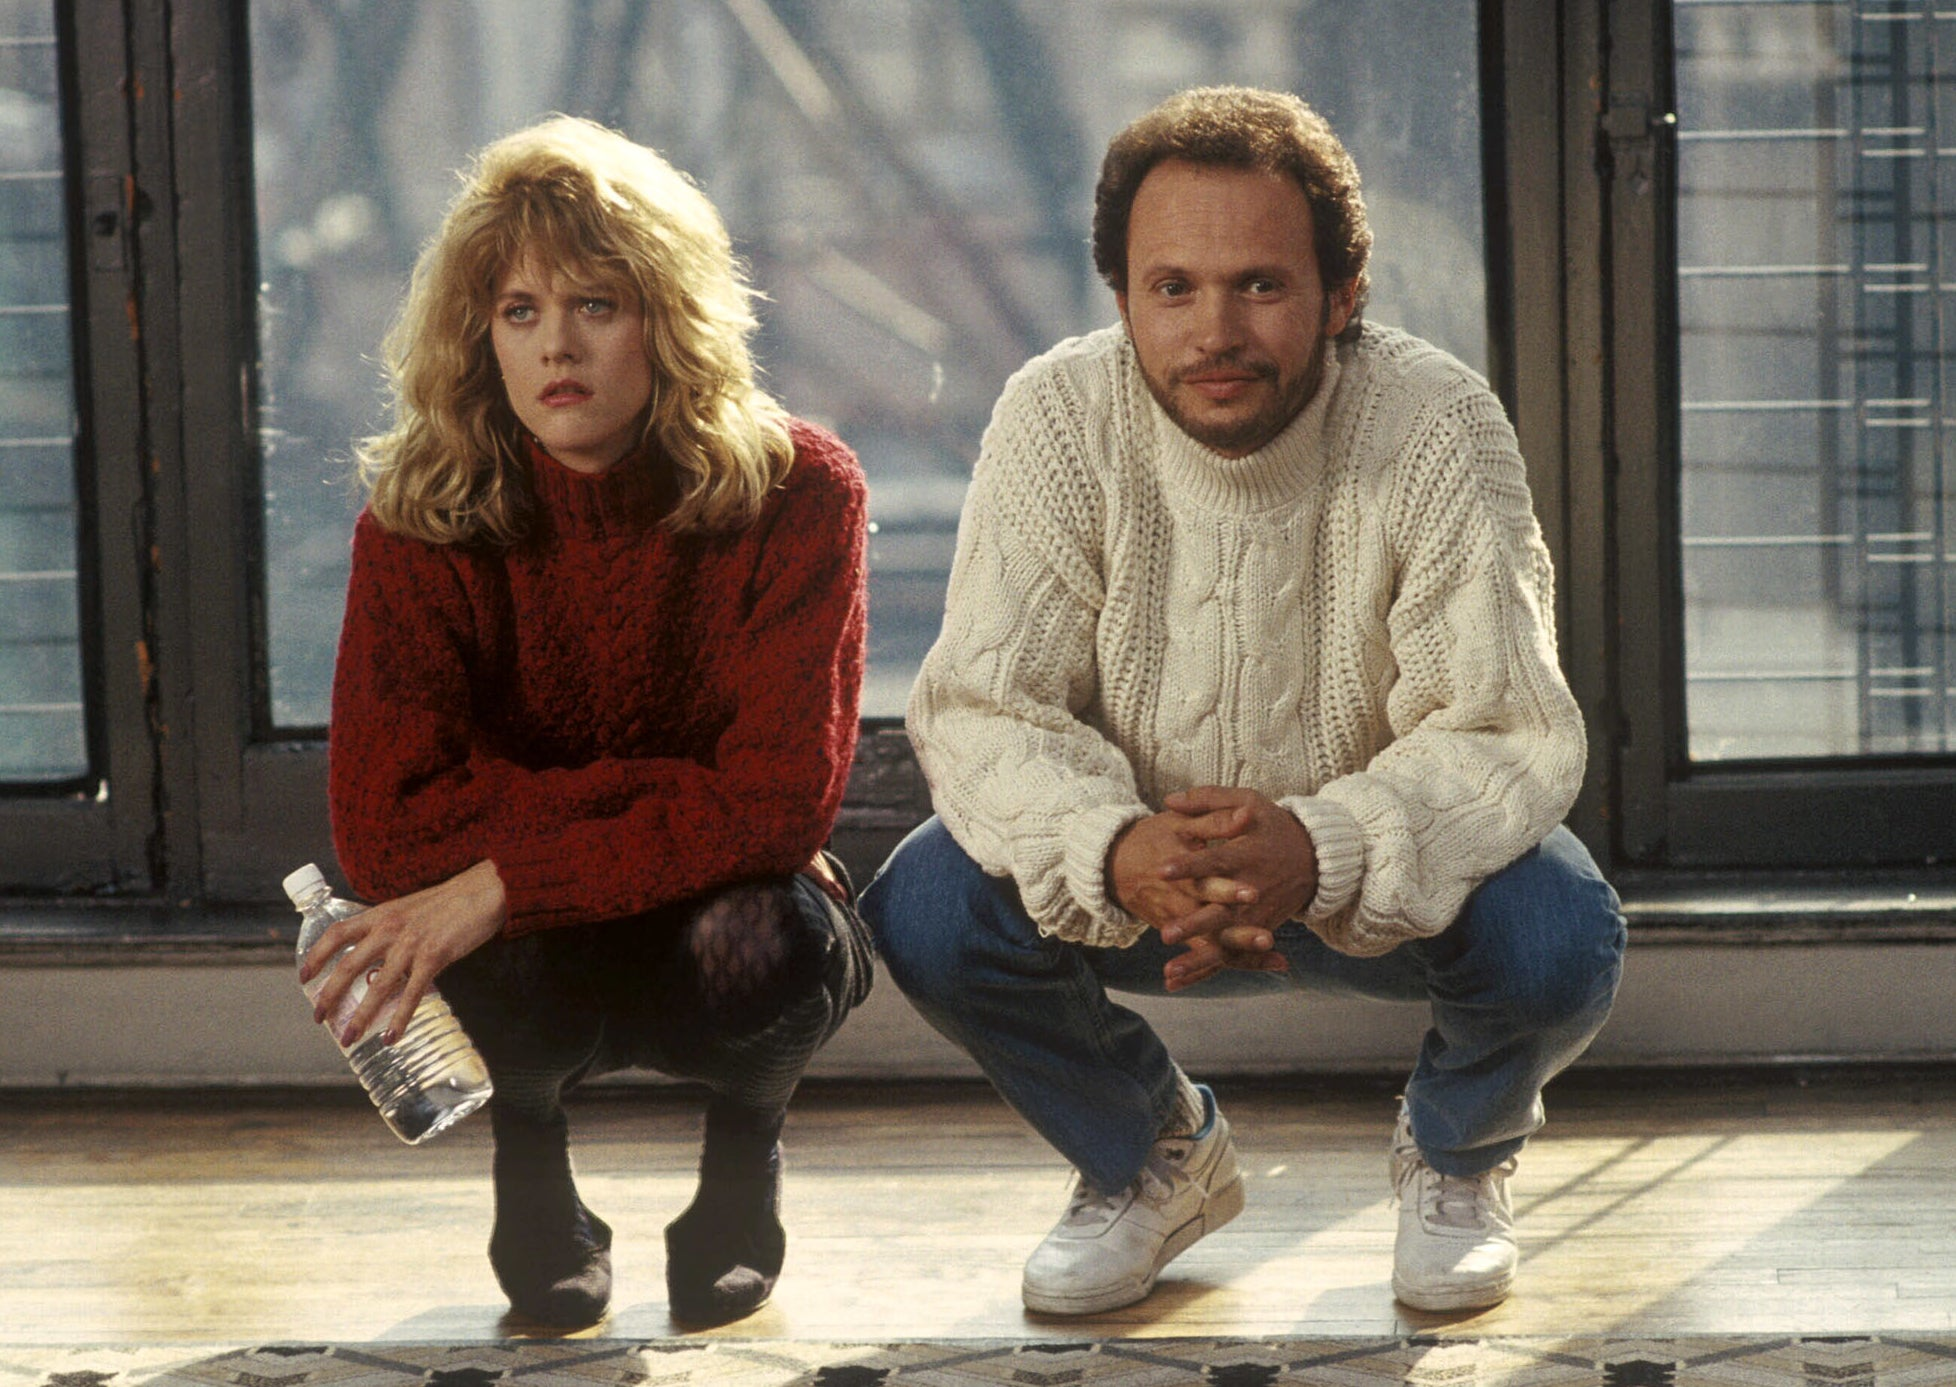 Still from When Harry Met Sally: Meg Ryan and Billy Crystal squat side by side, smiling at each other